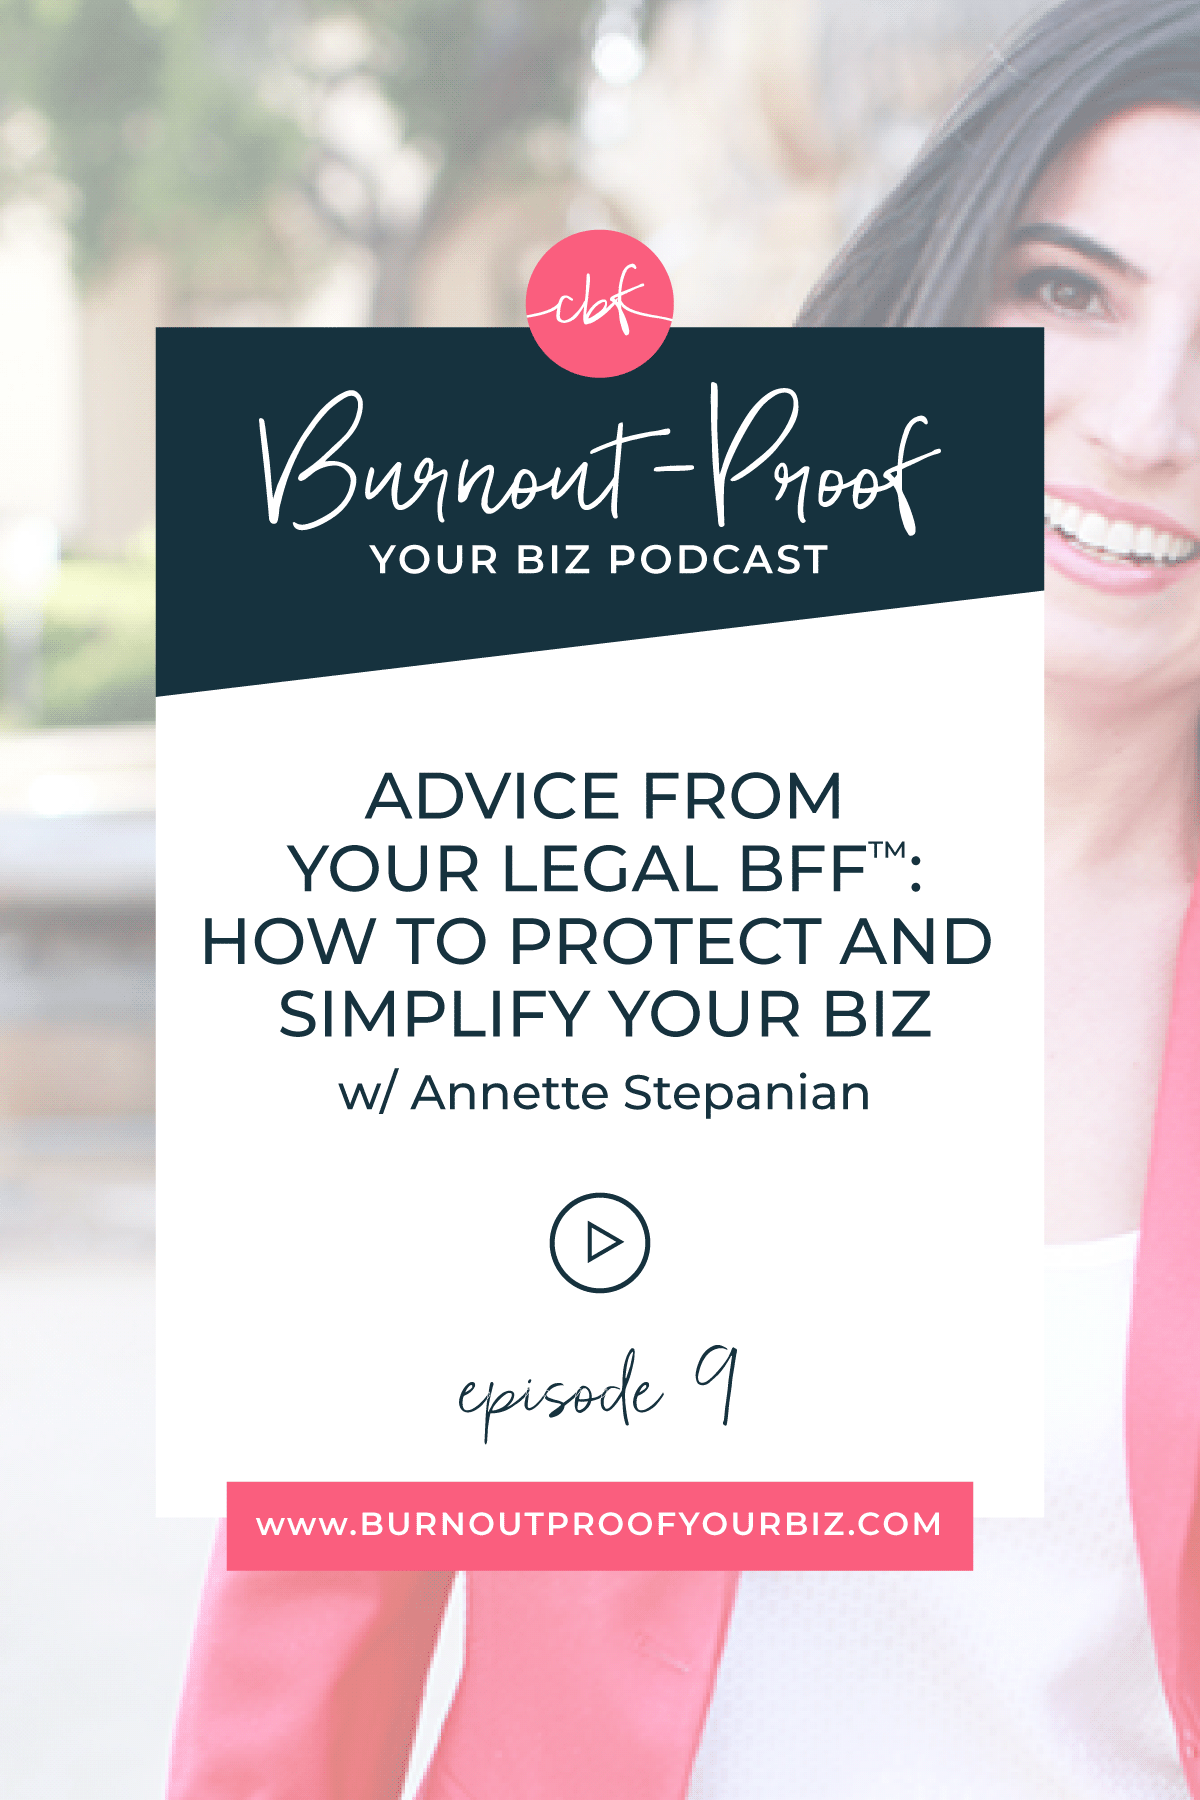 Burnout-Proof Your Biz Podcast with Chelsea B Foster   Episode 009 - Advice From Your Legal BFF™: How to Protect and Simplify Your Biz with Annette Stepanian   Learn how to run your biz and live your dream life on your own terms without the fear of burnout.